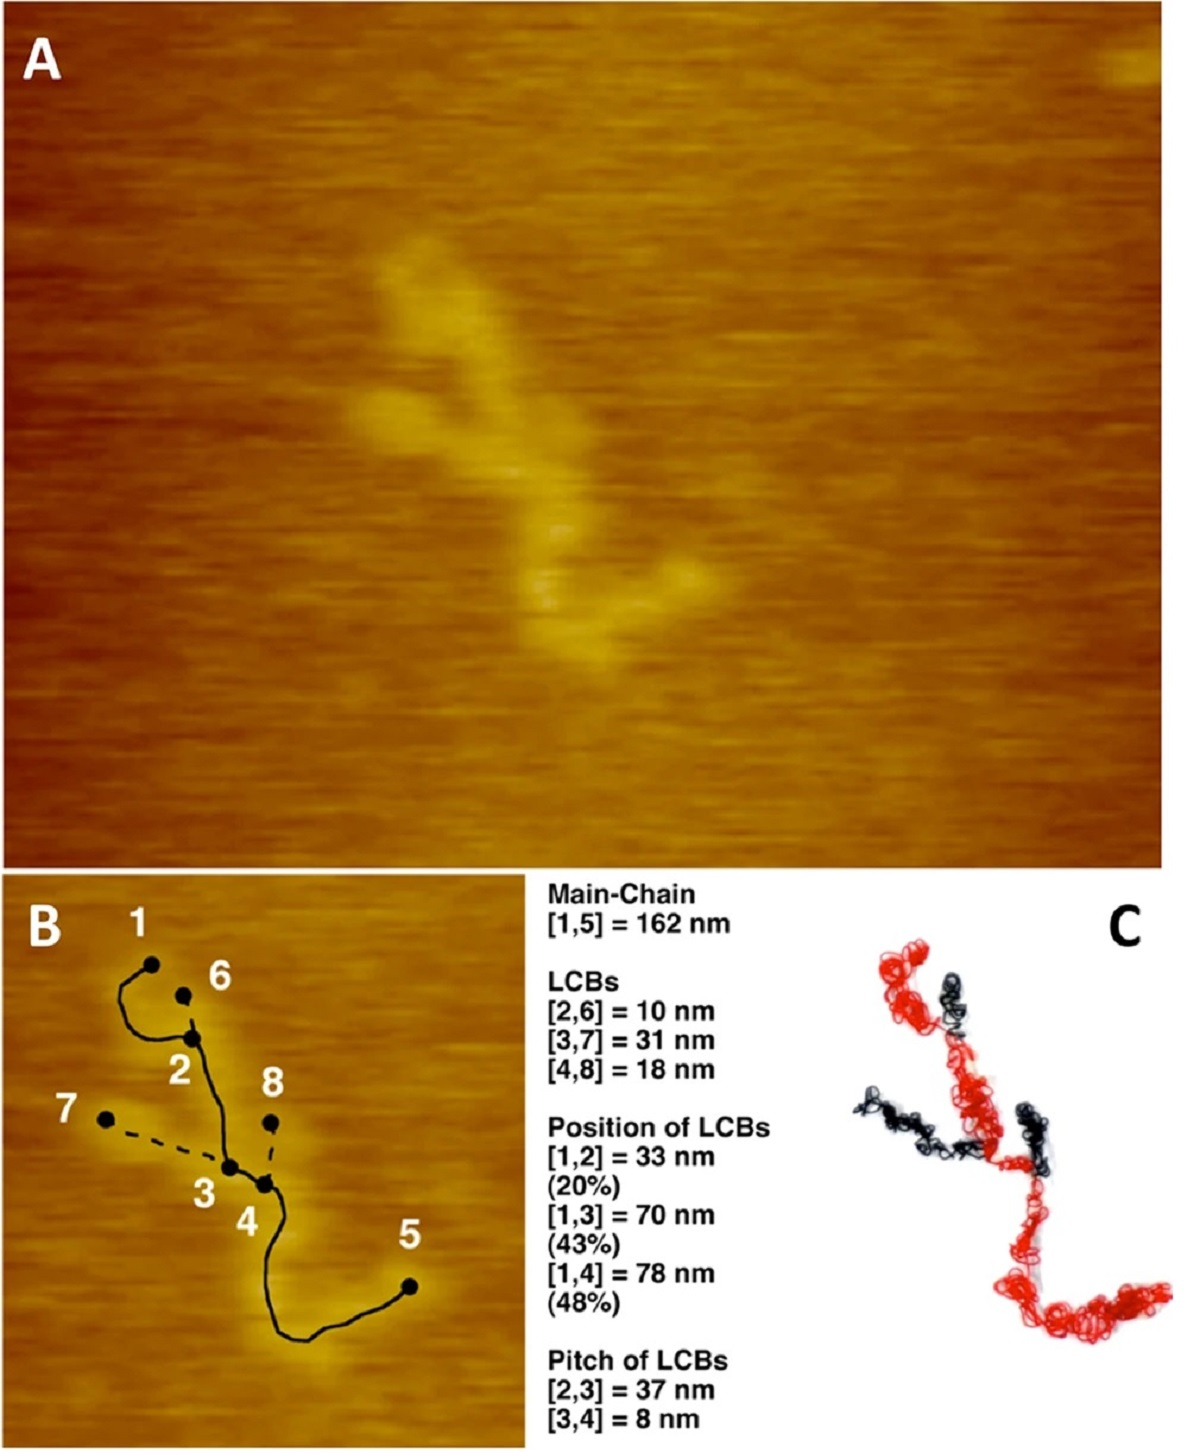 "Figure 1 from ""Direct Observation of Long-Chain Branches in a Low-Density Polyethylene "" by K. Shinohara et al.: Direct measurement of LCB in a tubular LDPE (F200-0 fractionated). (A) AFM image of a single molecule of LDPE on mica in DMTS at 25 °C. X: 279 nm, Y: 209 nm, Z: 18 nm. (B) Length of each chain of LDPE. (C) A wire model of self-shrinking structure of polymer chain of LDPE. Main chain: red wire. LCB: black wire. The model was created to be one tenth of the length of the extended chain based on AFM observation (B), MD simulation (Fig. S1), and the molecular weight determined by SEC-MALLS-Visc experiments (see Fig. 2)."